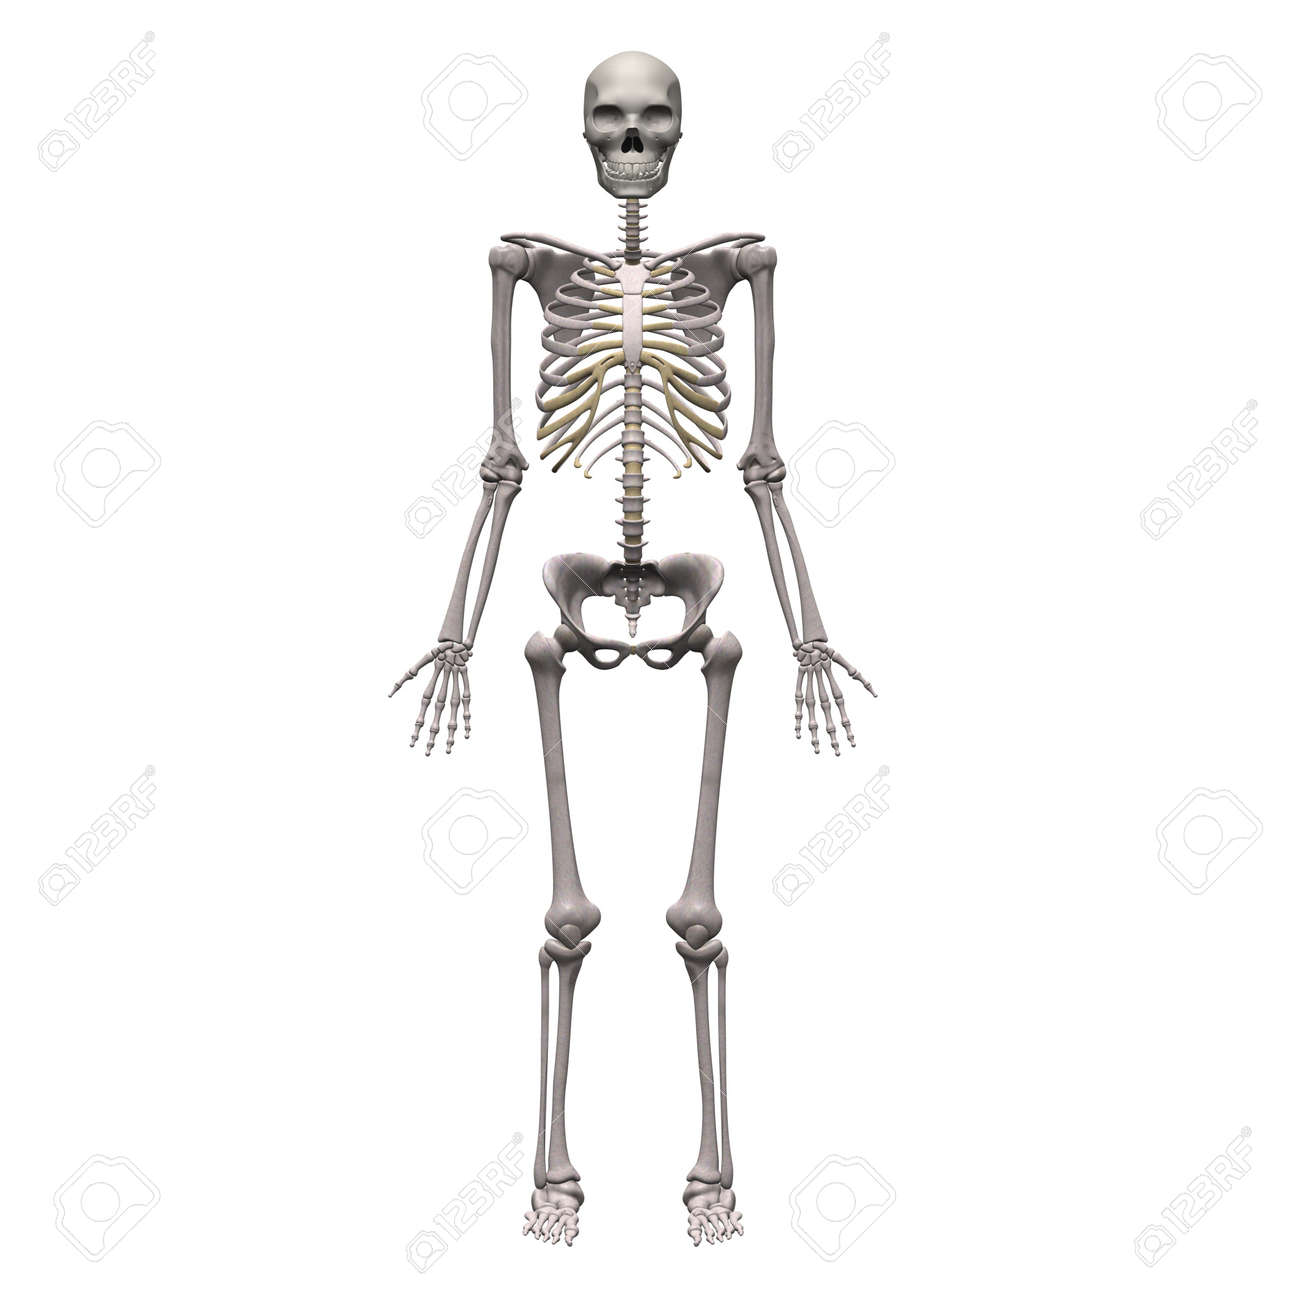 3d render of male skeleton stock photo picture and royalty free